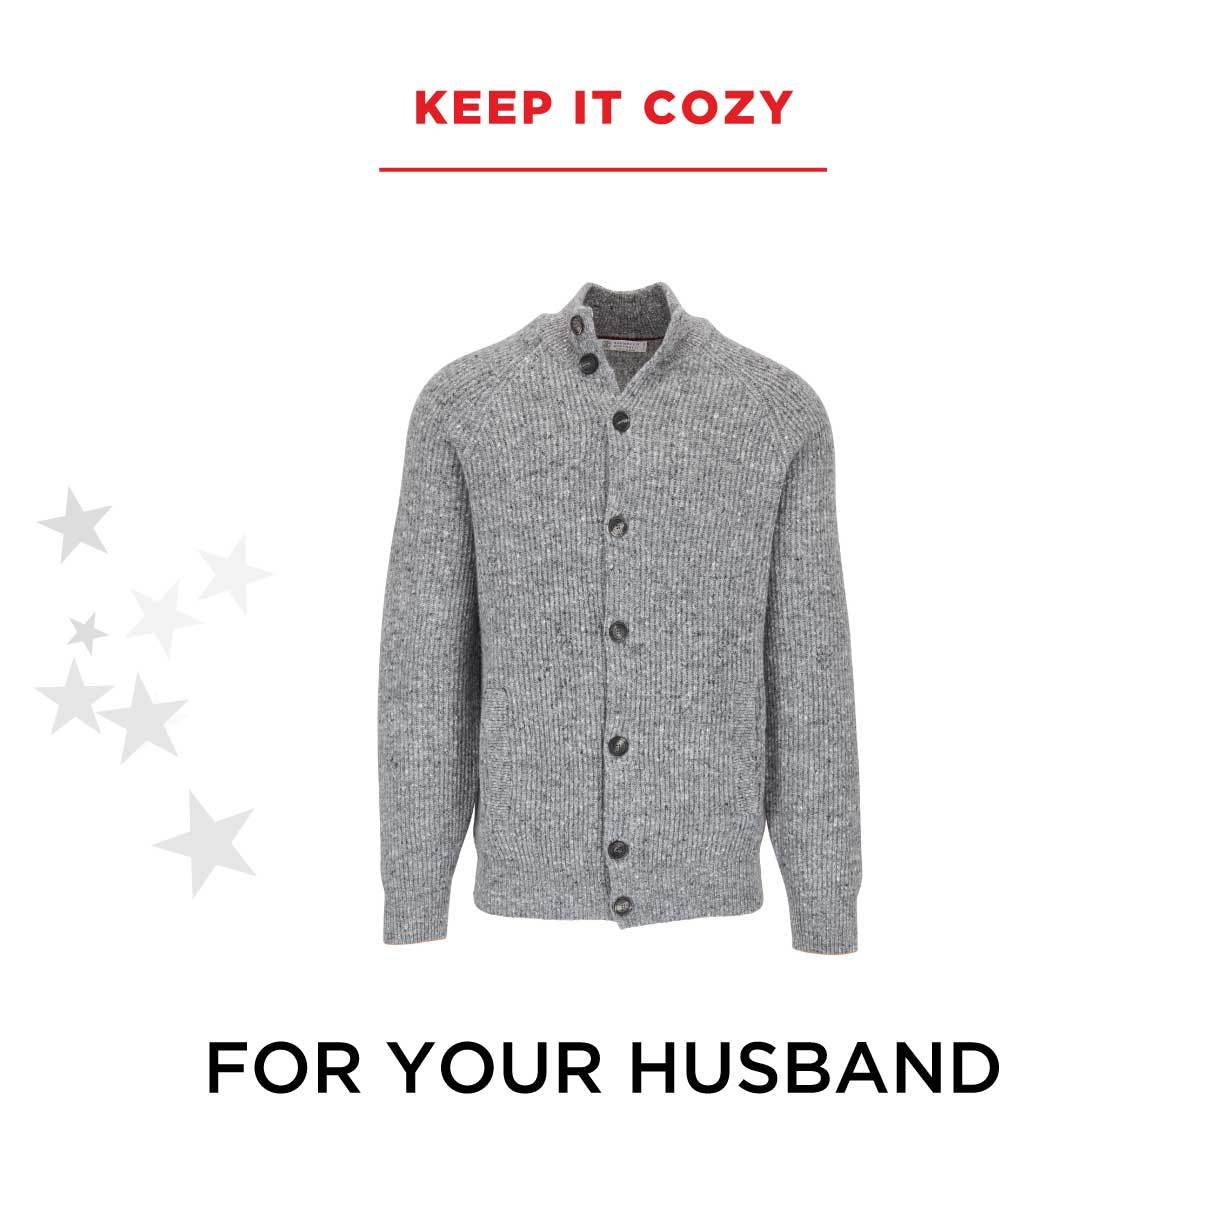 Best Gifts for Your Husband